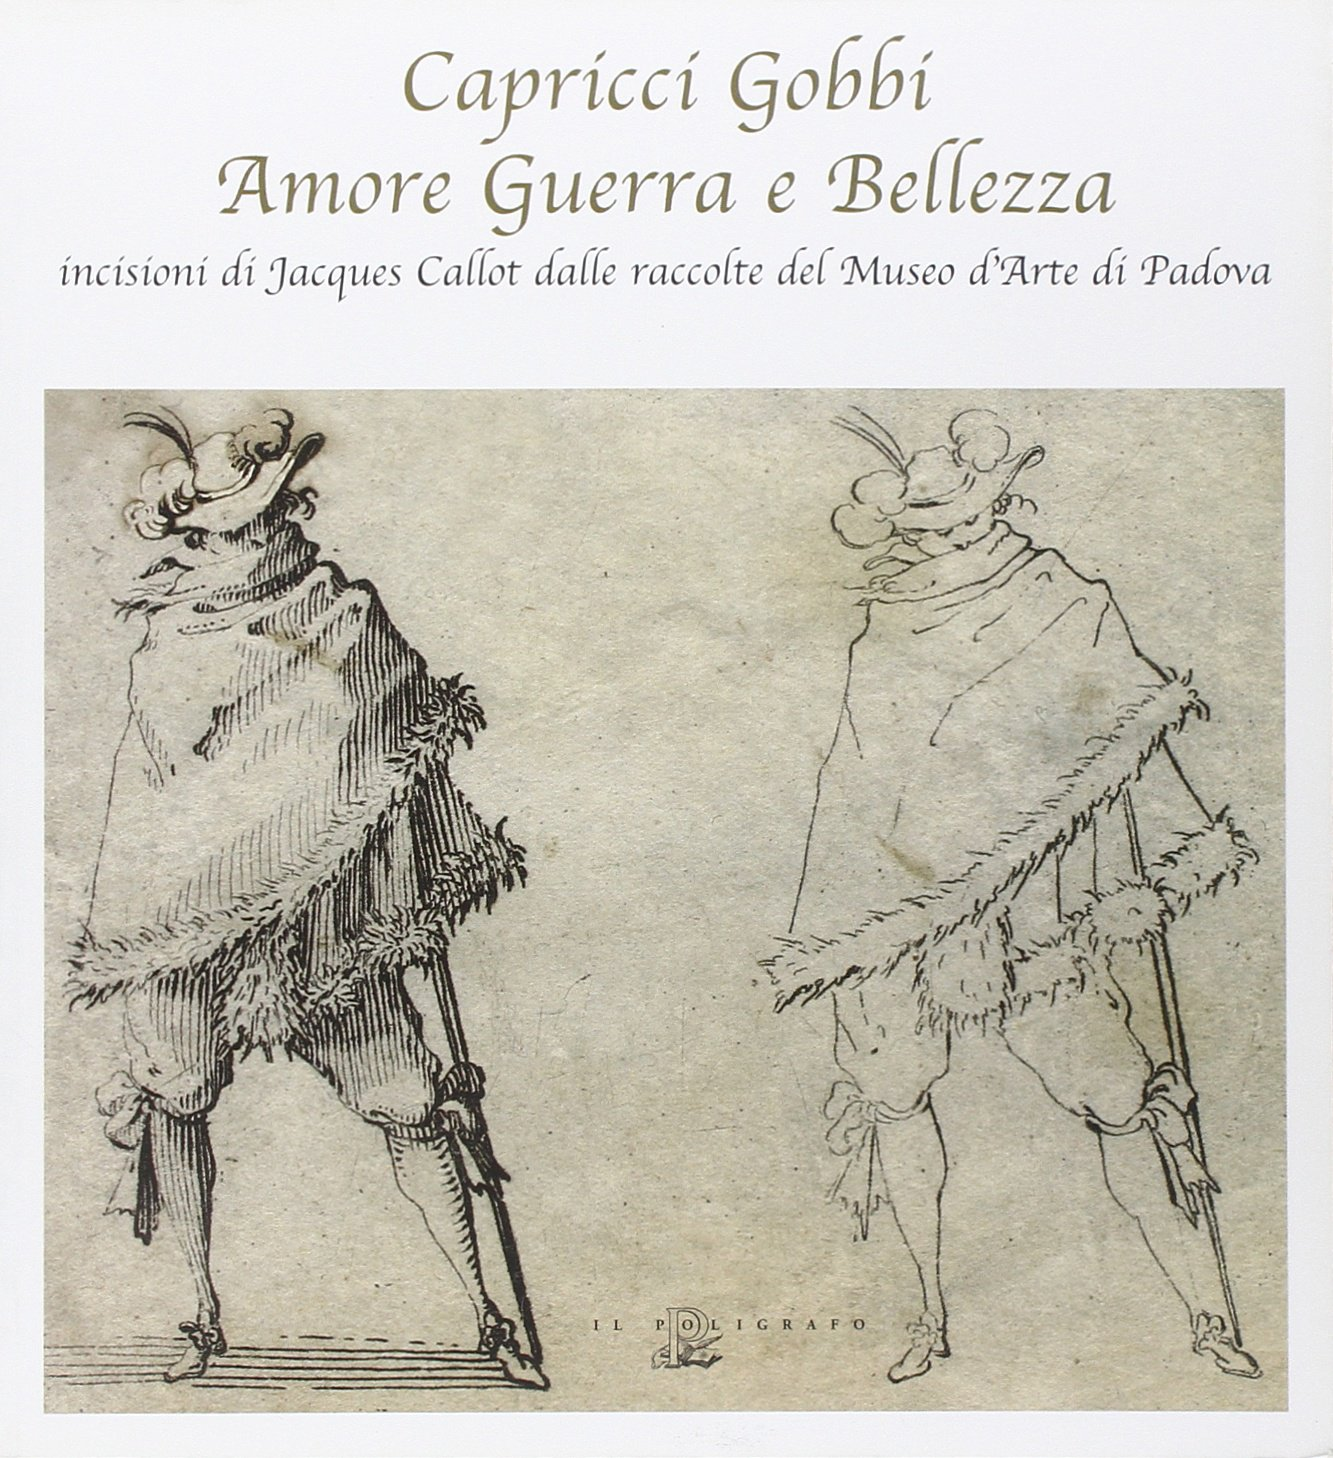 CAPRICCI, GOBBI, AMORE, GUERRA E BELLEZA: INCISIONI DI JACQUES CALLOT DALLE RACCOLTE DEL MUSEO D'ARTE DI PADOVA (Whims, Hunchbacks, Love, War and Beauty: Prints by Jacques Callot from the Collection of the Museo D'Arte in Padua) PDF